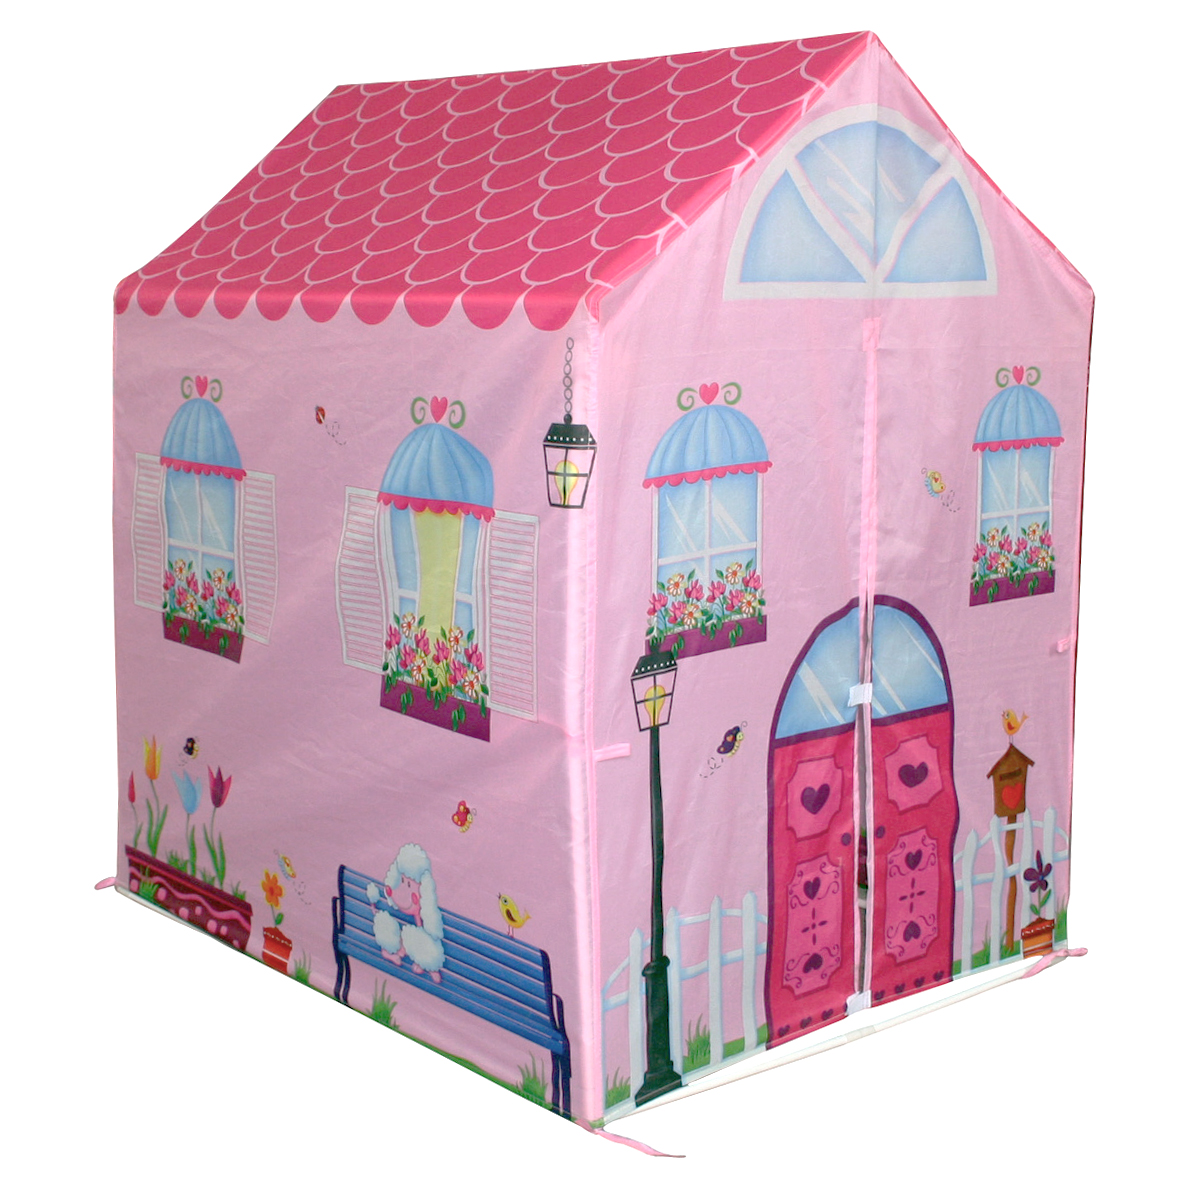 Charles Bentley Childrens Playhouse Tent